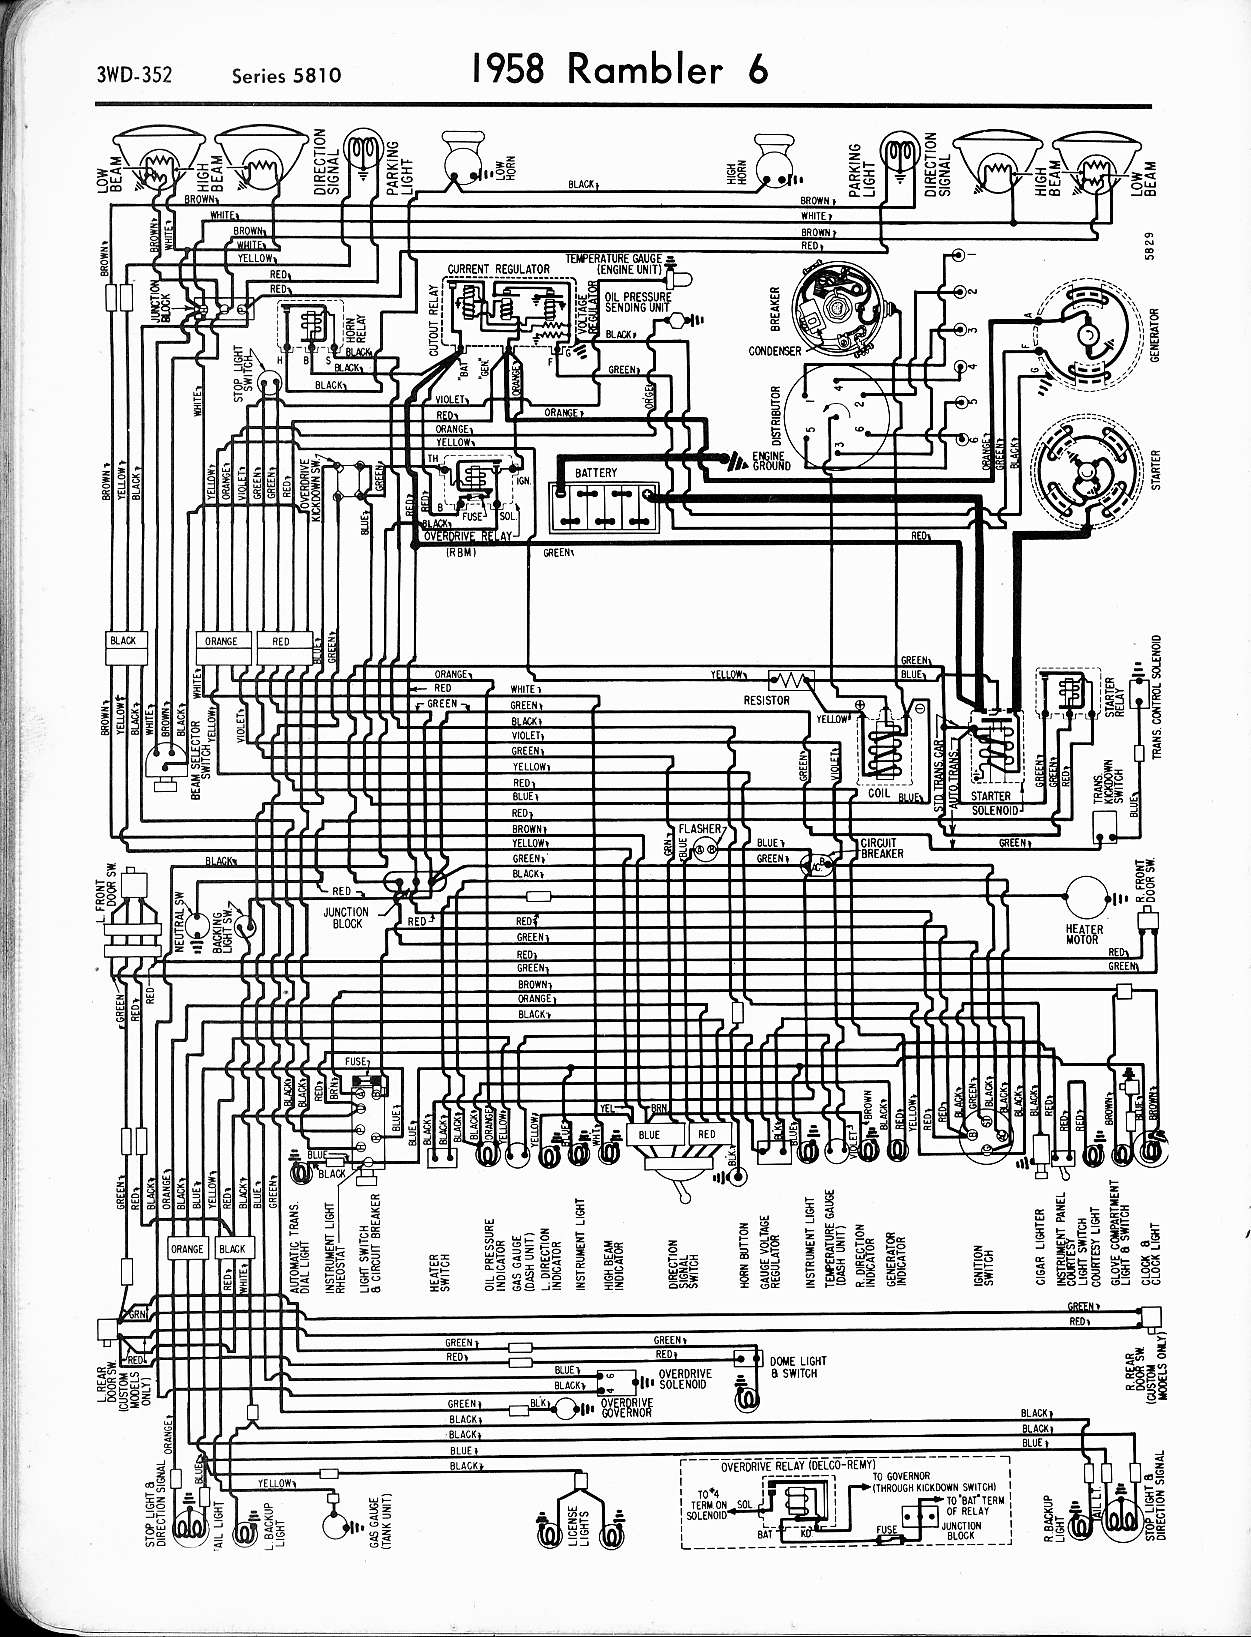 Amcorm besides Amcramblerambassadororm Toc also Wiring Diagrams Of Rambler American Deluxe And Super together with Mwire furthermore Mwire. on 1960 rambler american wiring diagrams